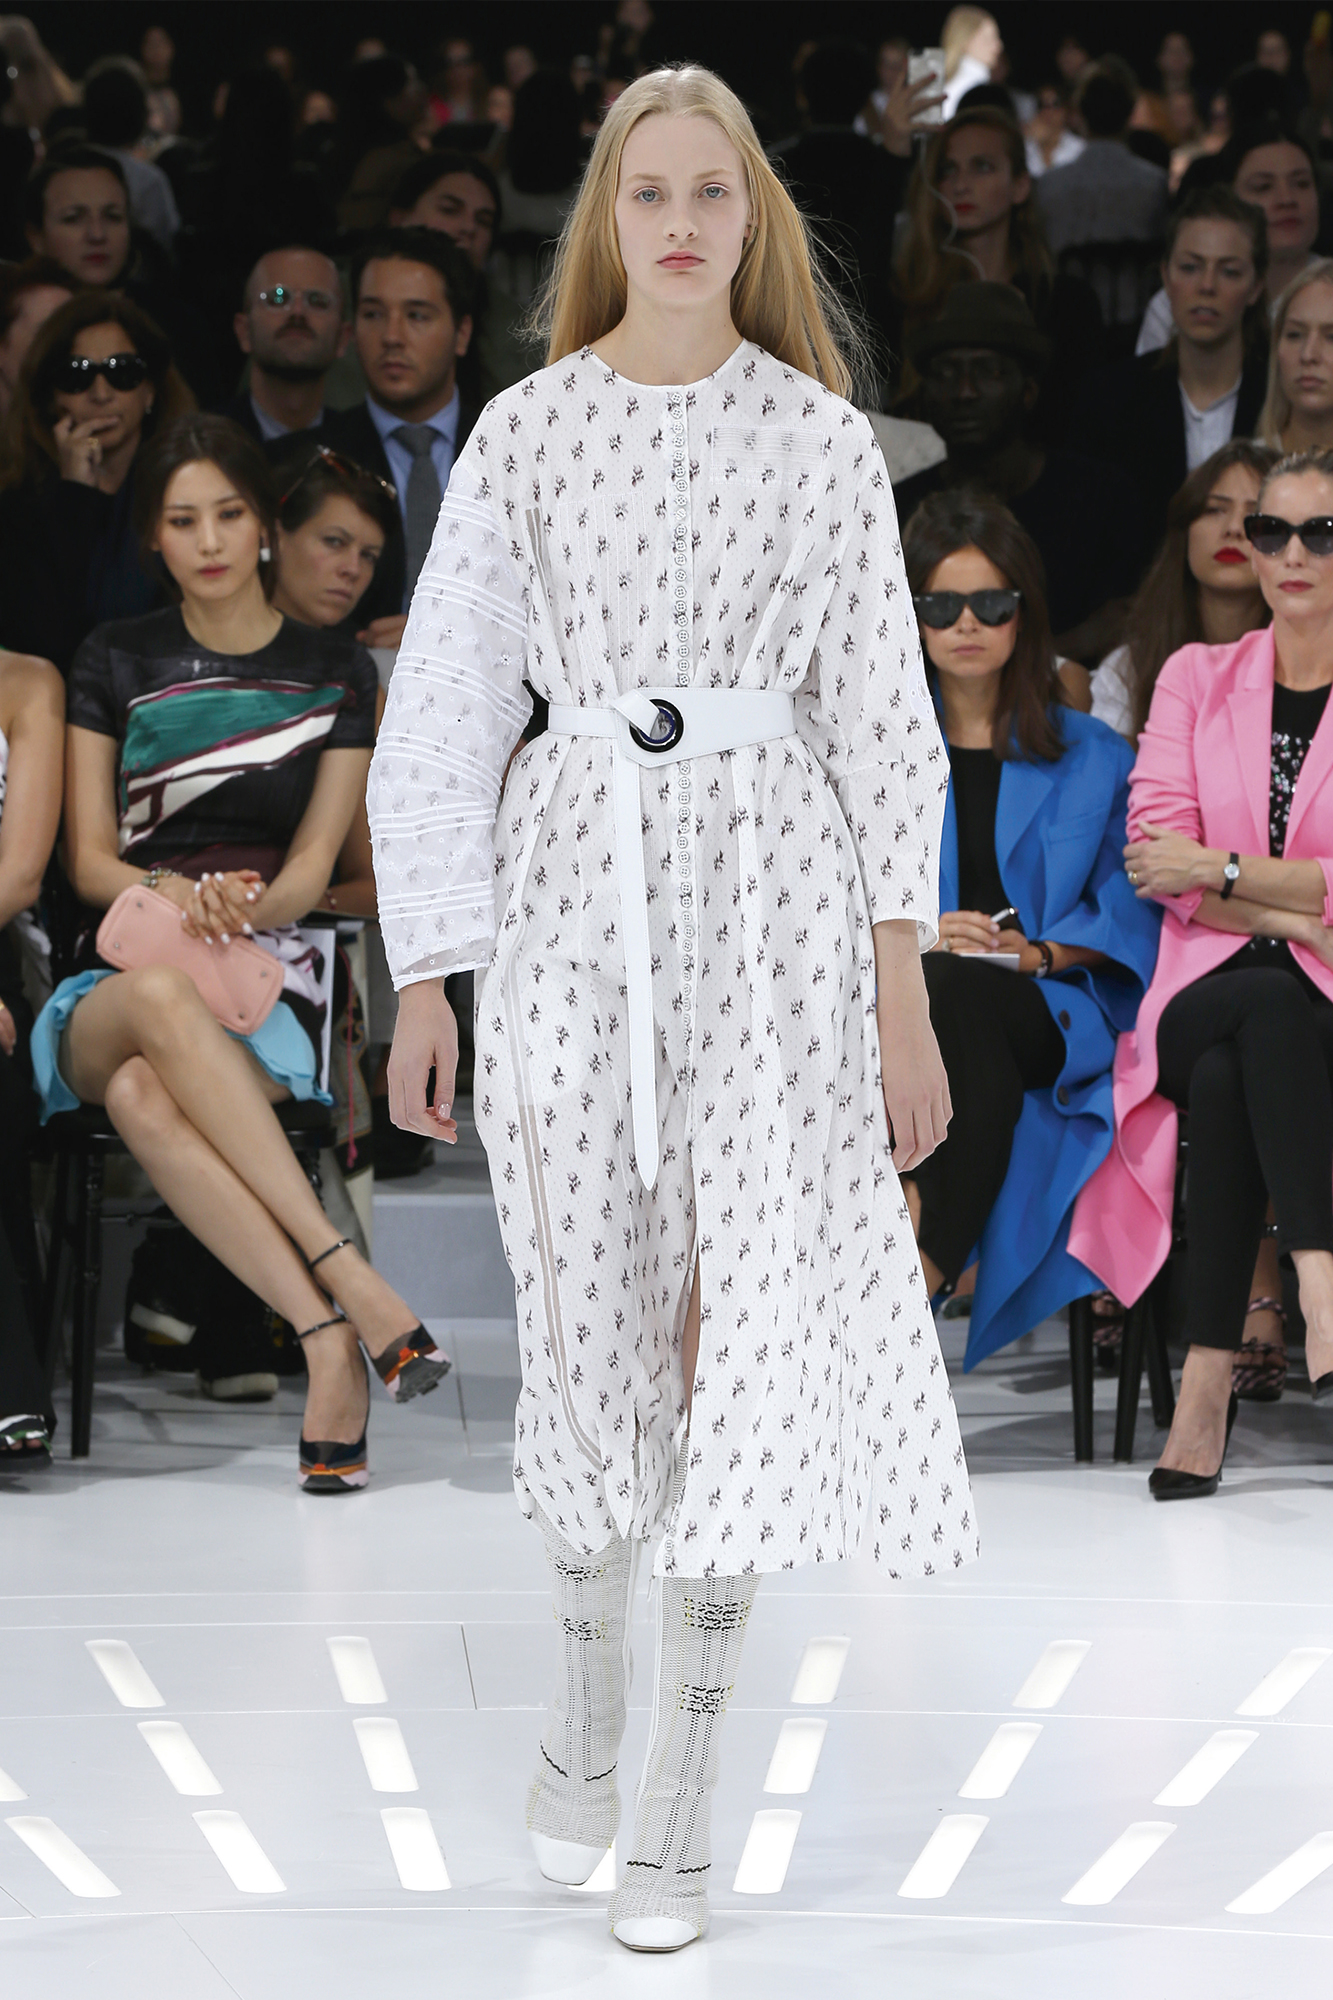 Christian Dior Haute Couture Spring-Summer Ready To Wear Dresses & Accessories Collection 2015-16 (11)